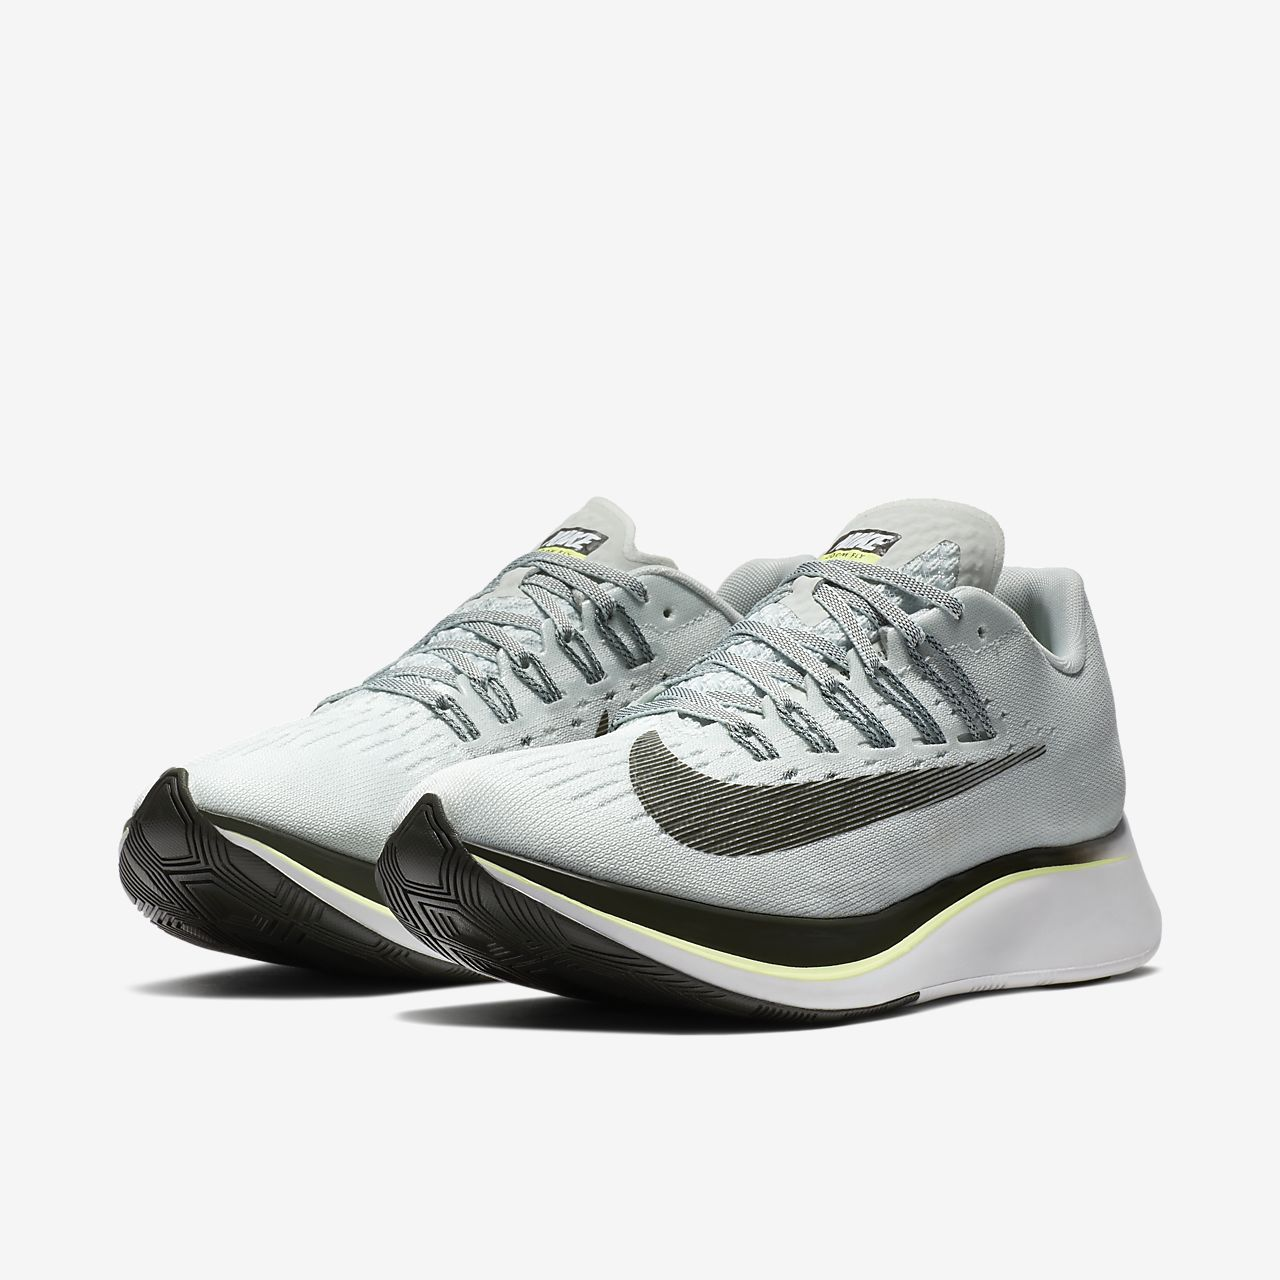 ... Chaussure de running Nike Zoom Fly pour Femme